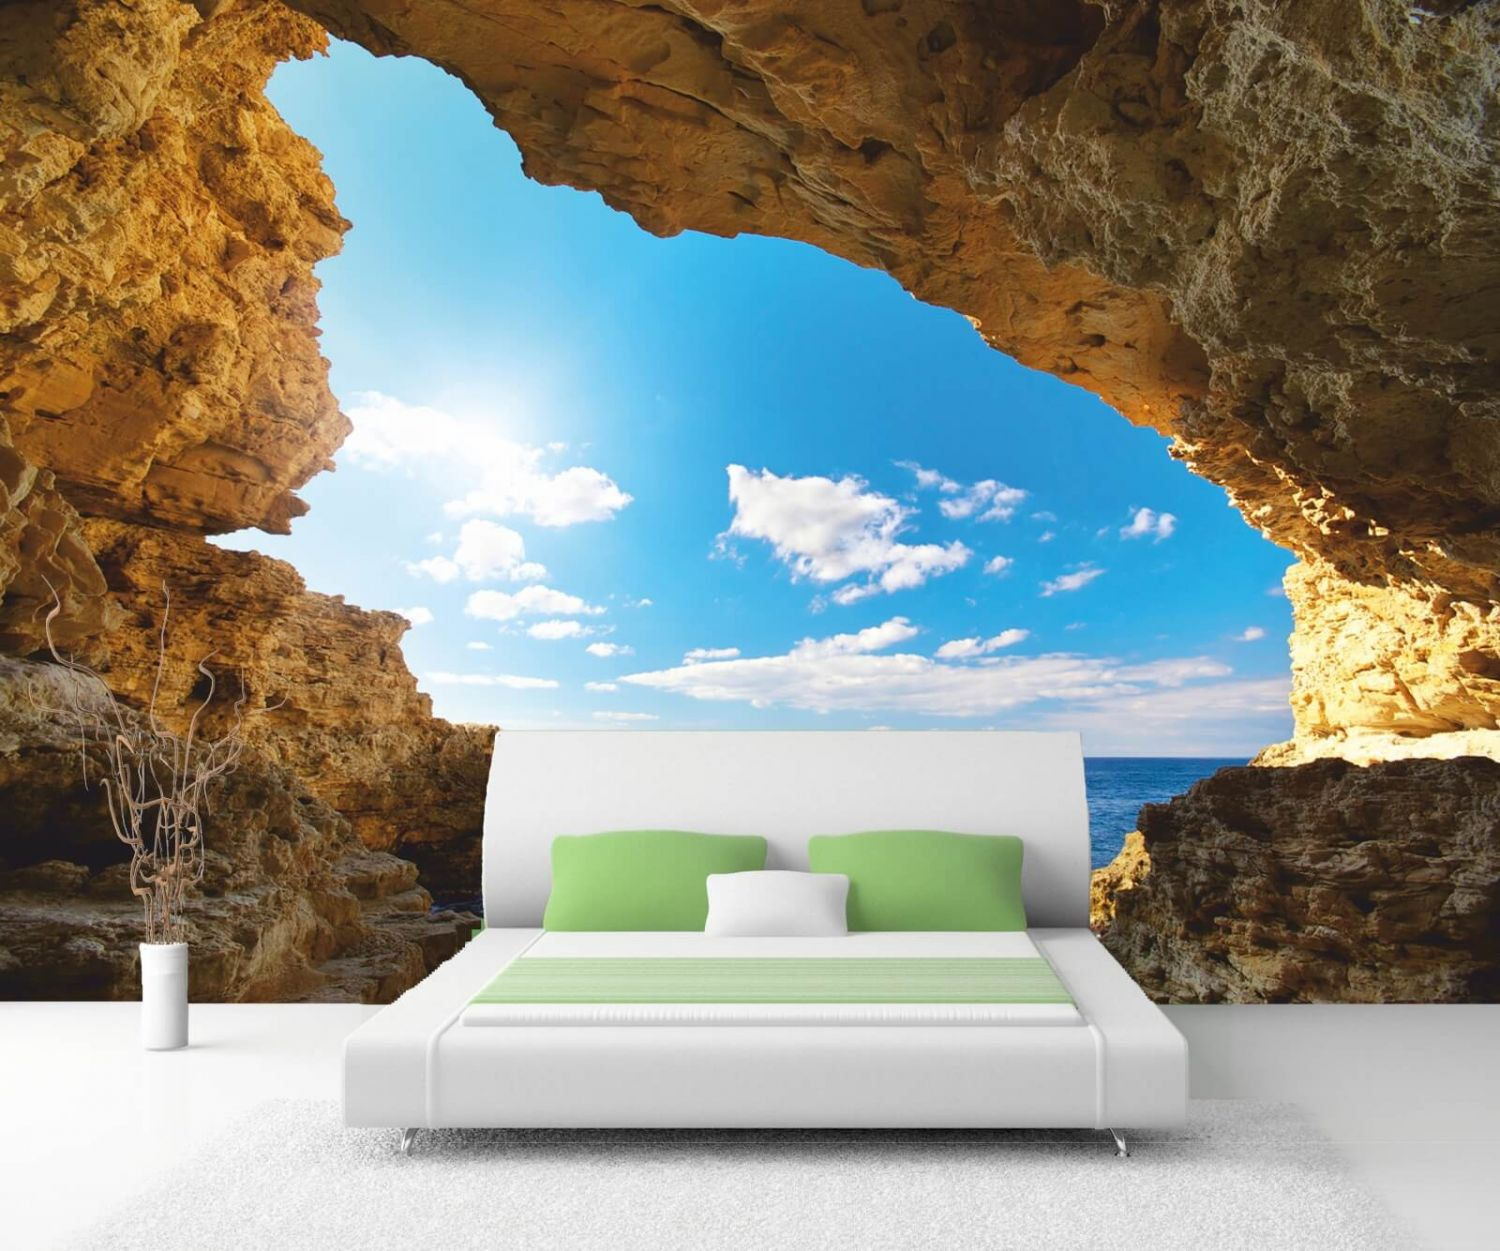 vlies xxl poster tapete fototapete natur grotte im sonnenschein ebay. Black Bedroom Furniture Sets. Home Design Ideas